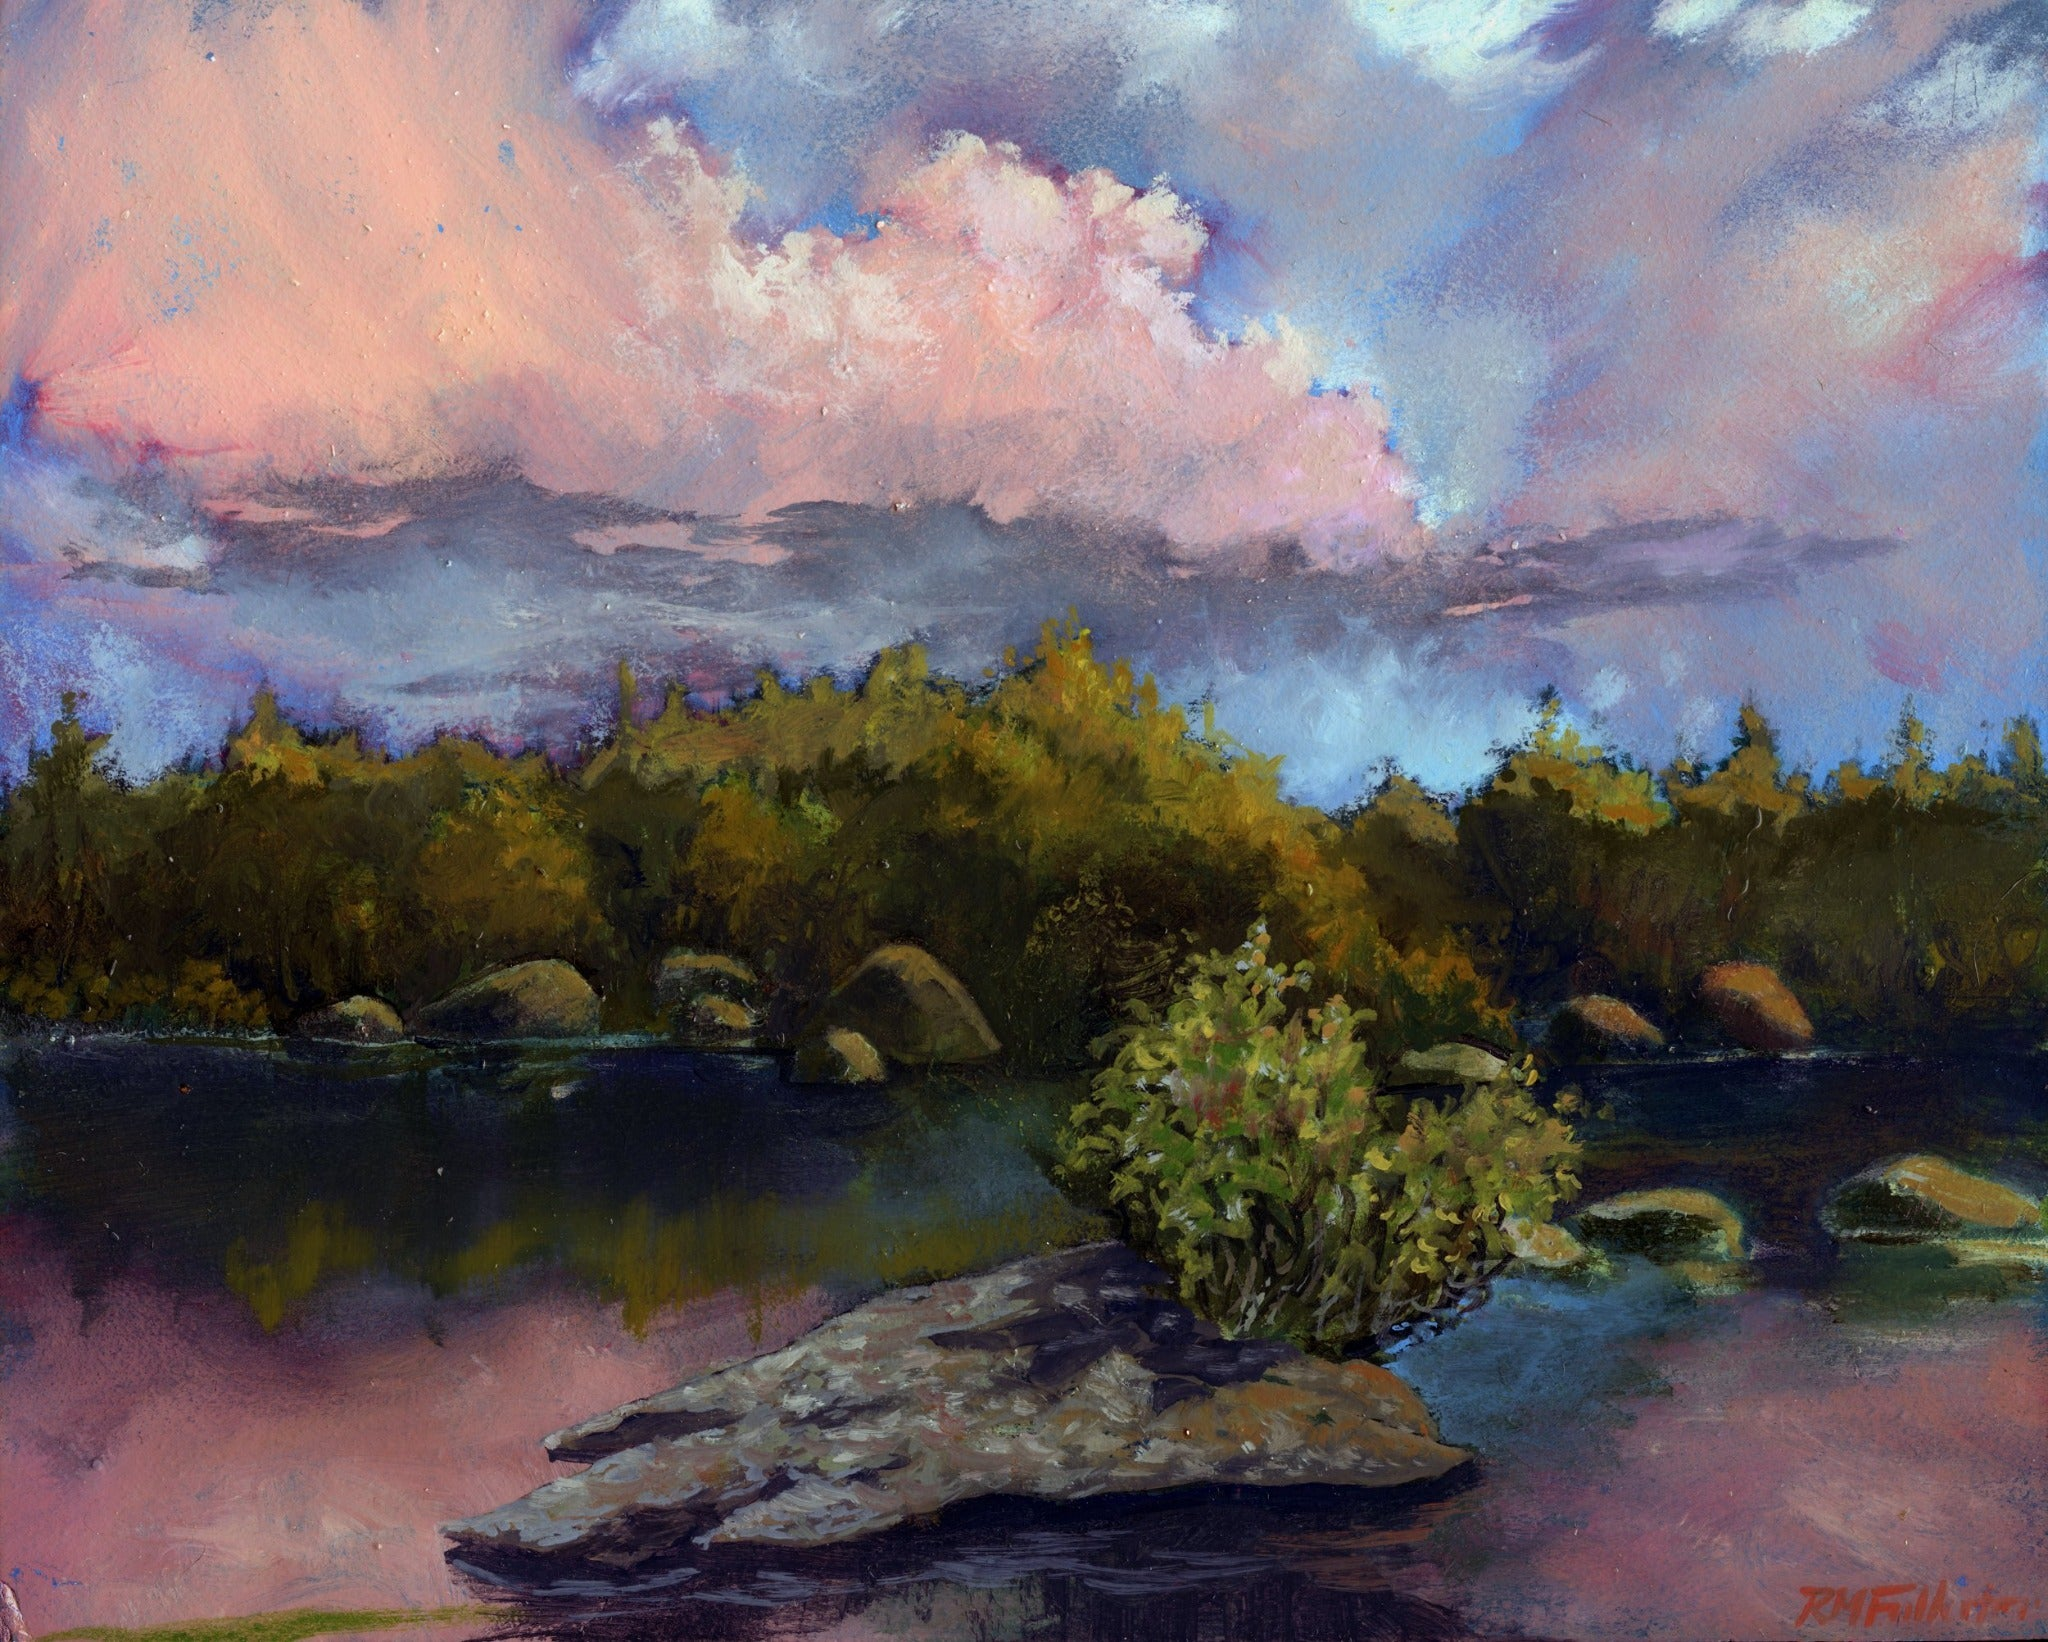 """Ethan Pond Sunset"" is a framed 8 by 10 inch oil painting on panel, depicting a mountain pond with trees along its edge and rocks in the water. Pink sunset clouds are reflected in the water. Ethan Pond is in the White Mountain National Forest in New Hampshire."